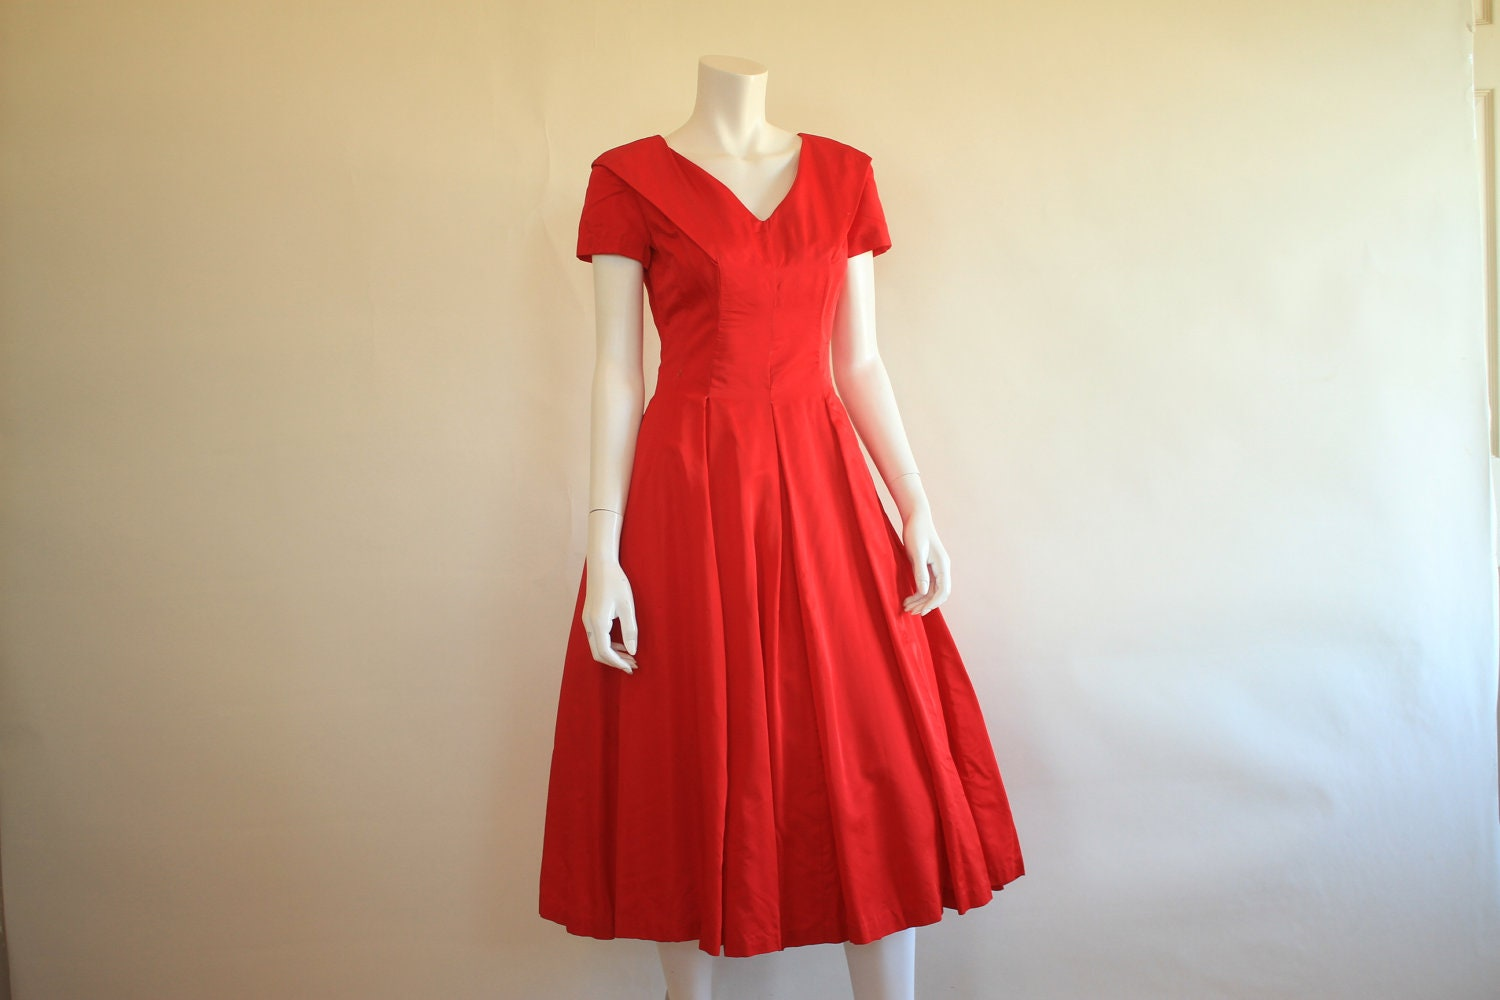 Vintage 1950s Dress /  50s Holiday Red Taffeta / New Look / Rockabilly / Audrey / S - ladyscarletts